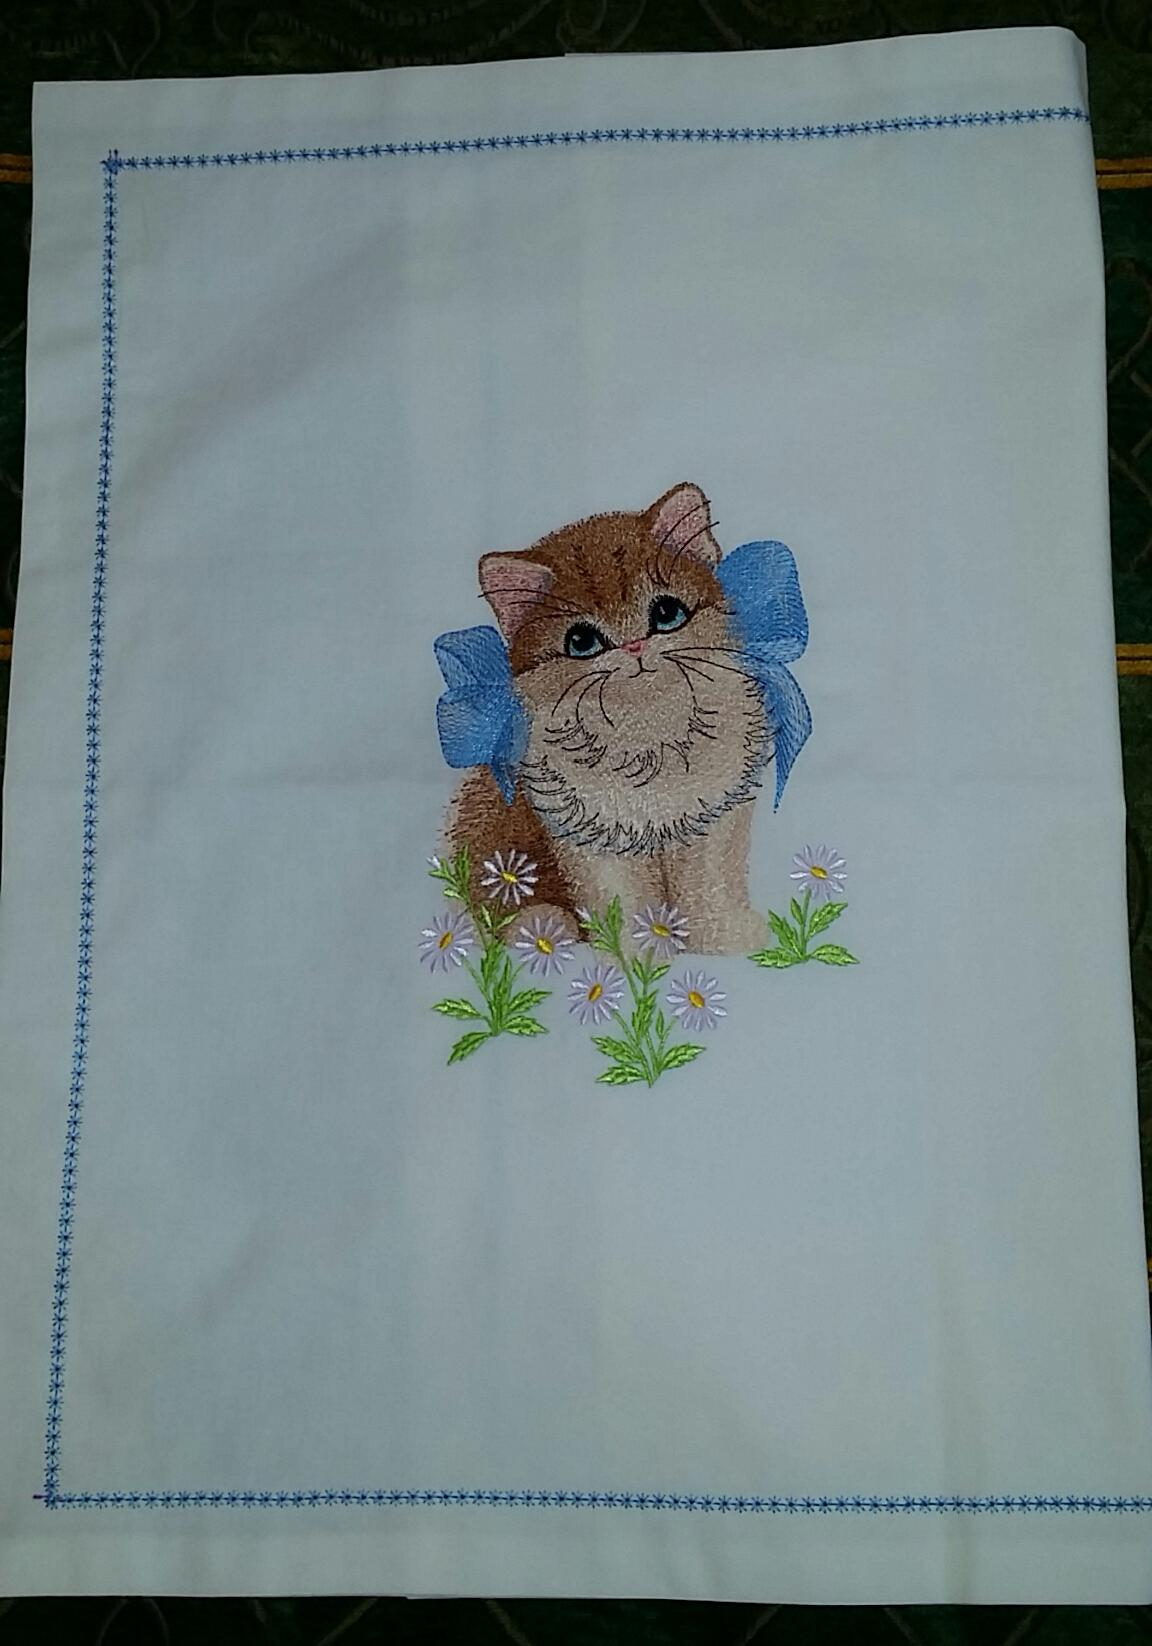 Emrboidered napkin with kitty and bow design